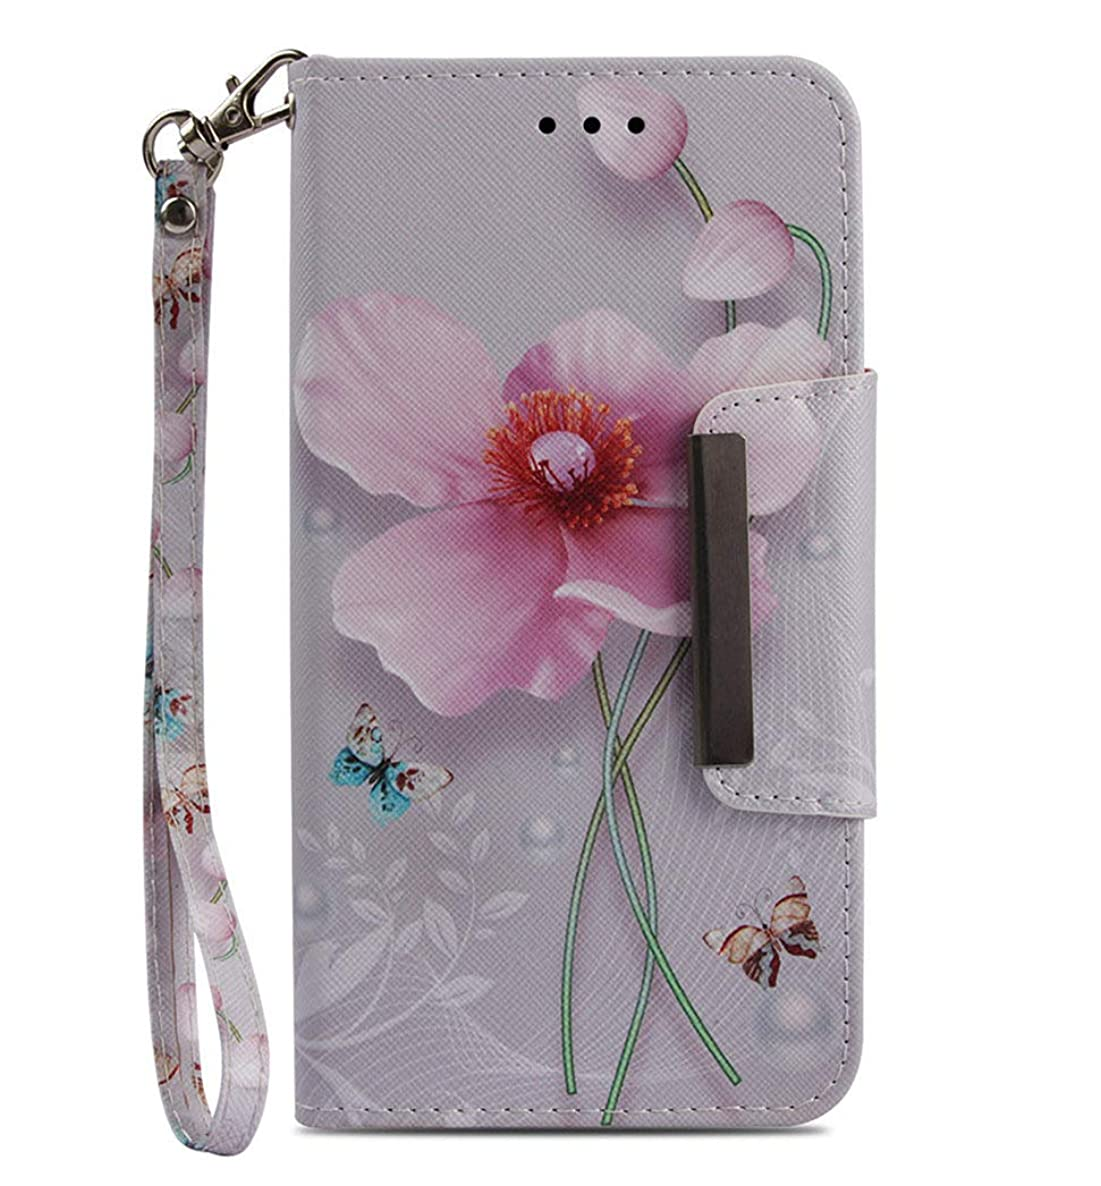 JanCalm iPhone 6 6S Wallet Case [Folio Cover][Stand Feature] Premium [Flower] Pattern iPhone 6/6S (4.7 inch) Credit Card Flip Case Protective PU Leather with Card Slot + Wrist Strap + Crystal Pen